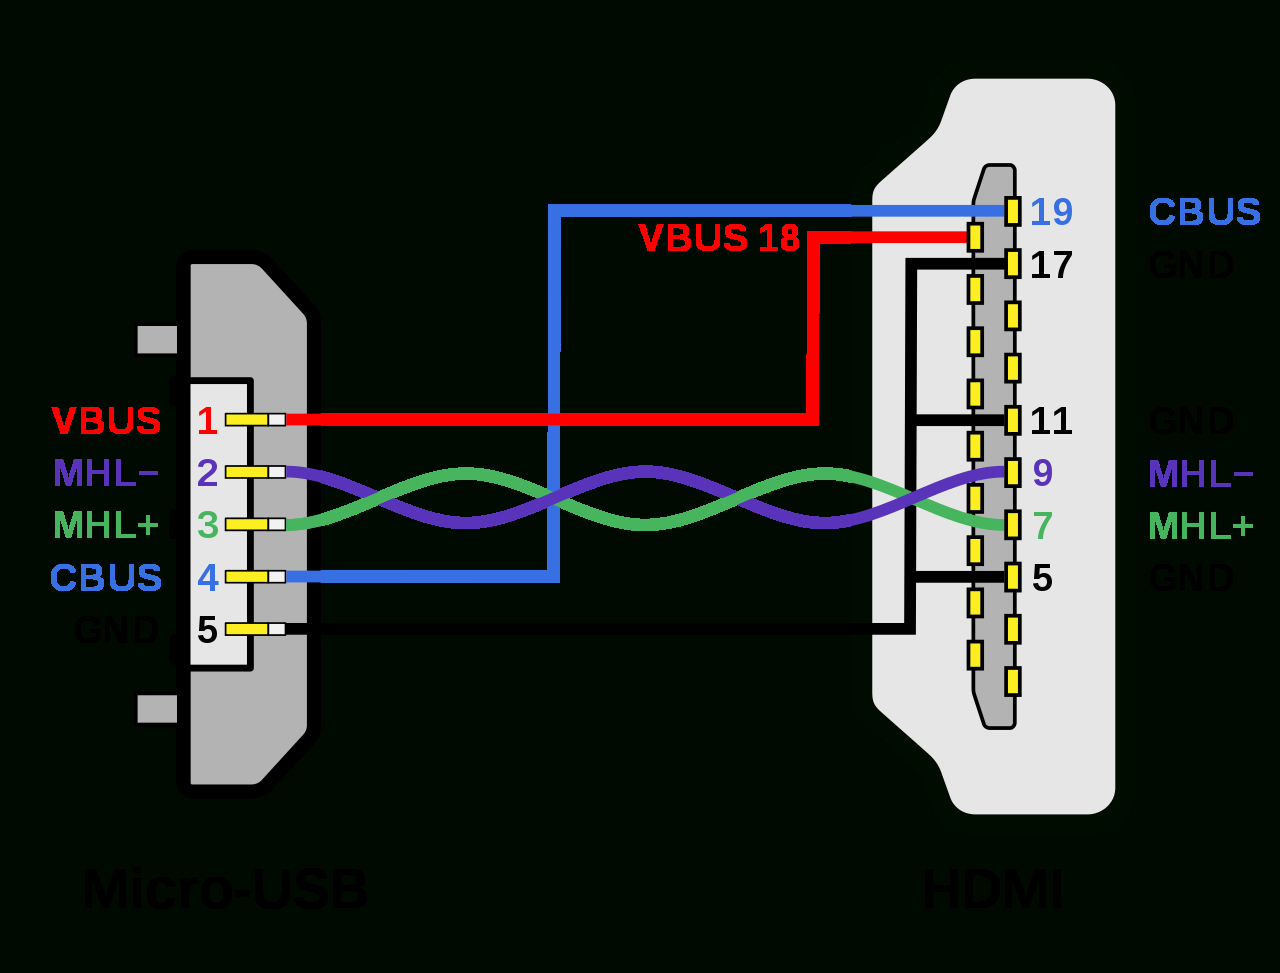 Hdmi Pinout Diagram - Wiring Diagrams Click - Usb To Cat5 Wiring Diagram